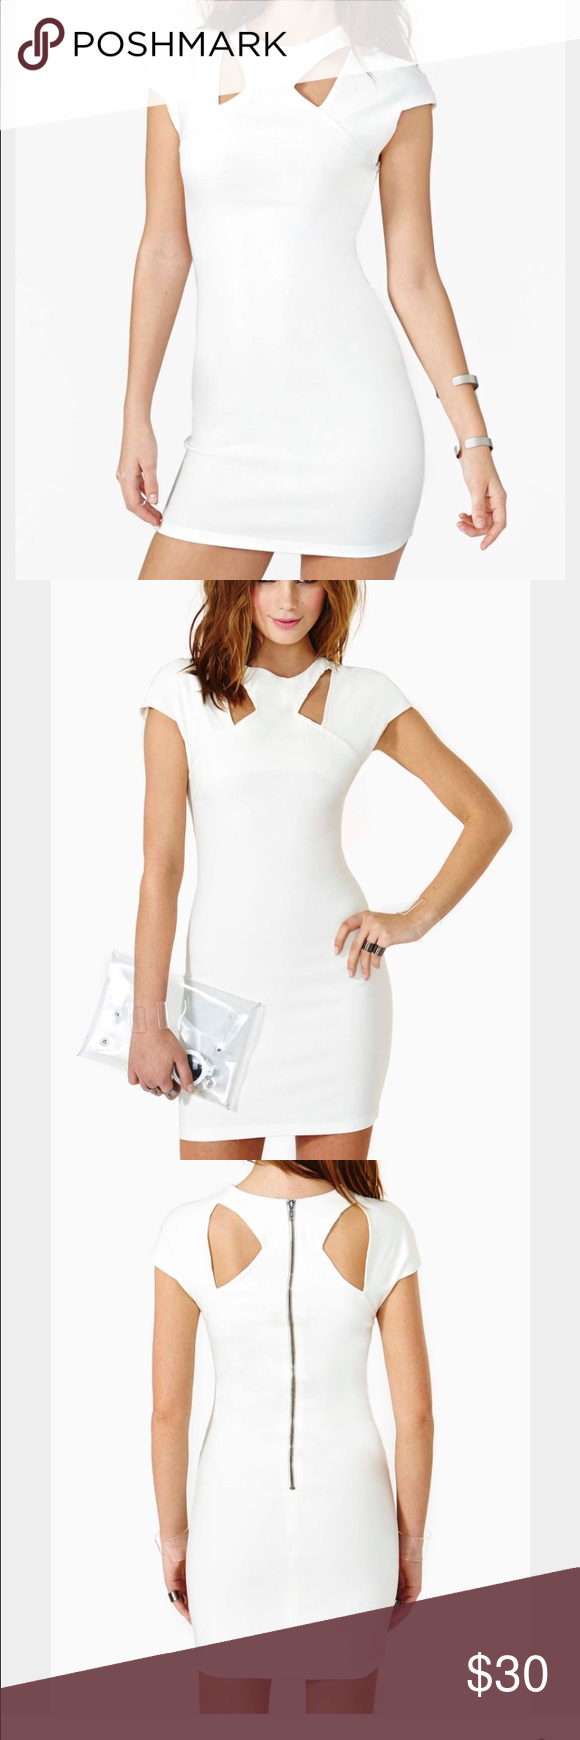 Nasty gal sharp aim white dress never worn Nasty gal sharp aim white cut out dress. Bodycon. Size small. Never worn/new. Sold out in stores. Nasty Gal Dresses Mini